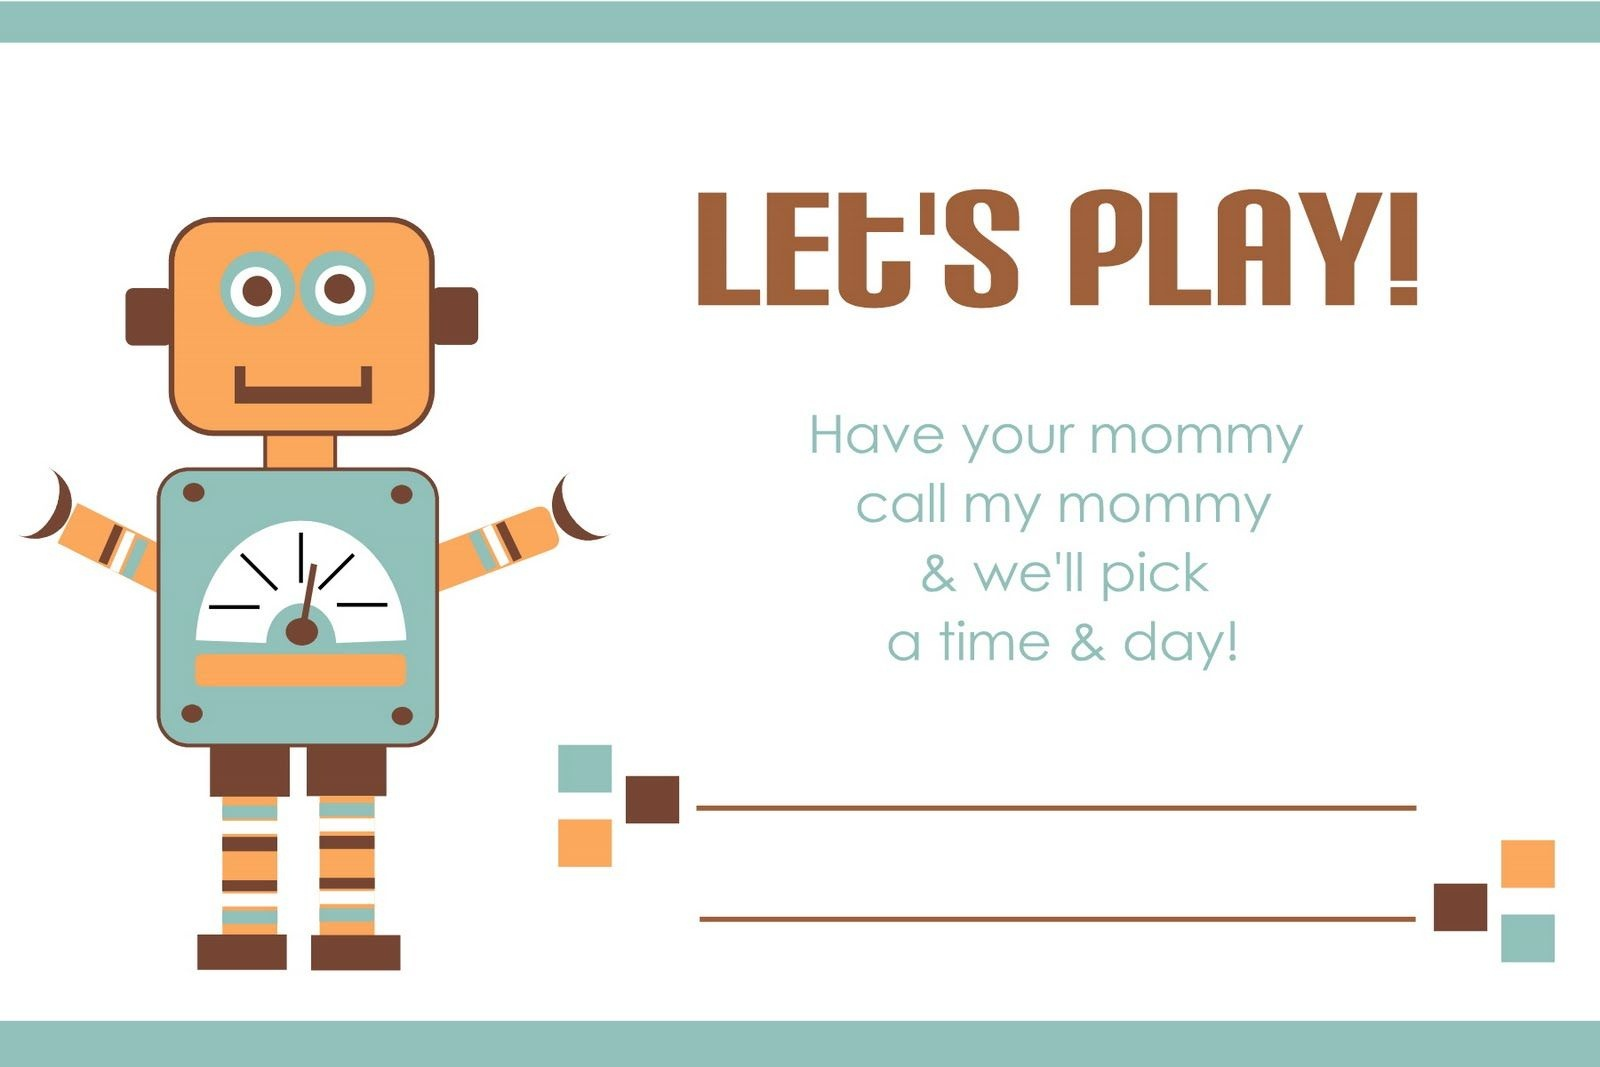 Printable Play Date Card | Printables | Kids Cards, Fun Projects For - Free Printable Play Date Cards